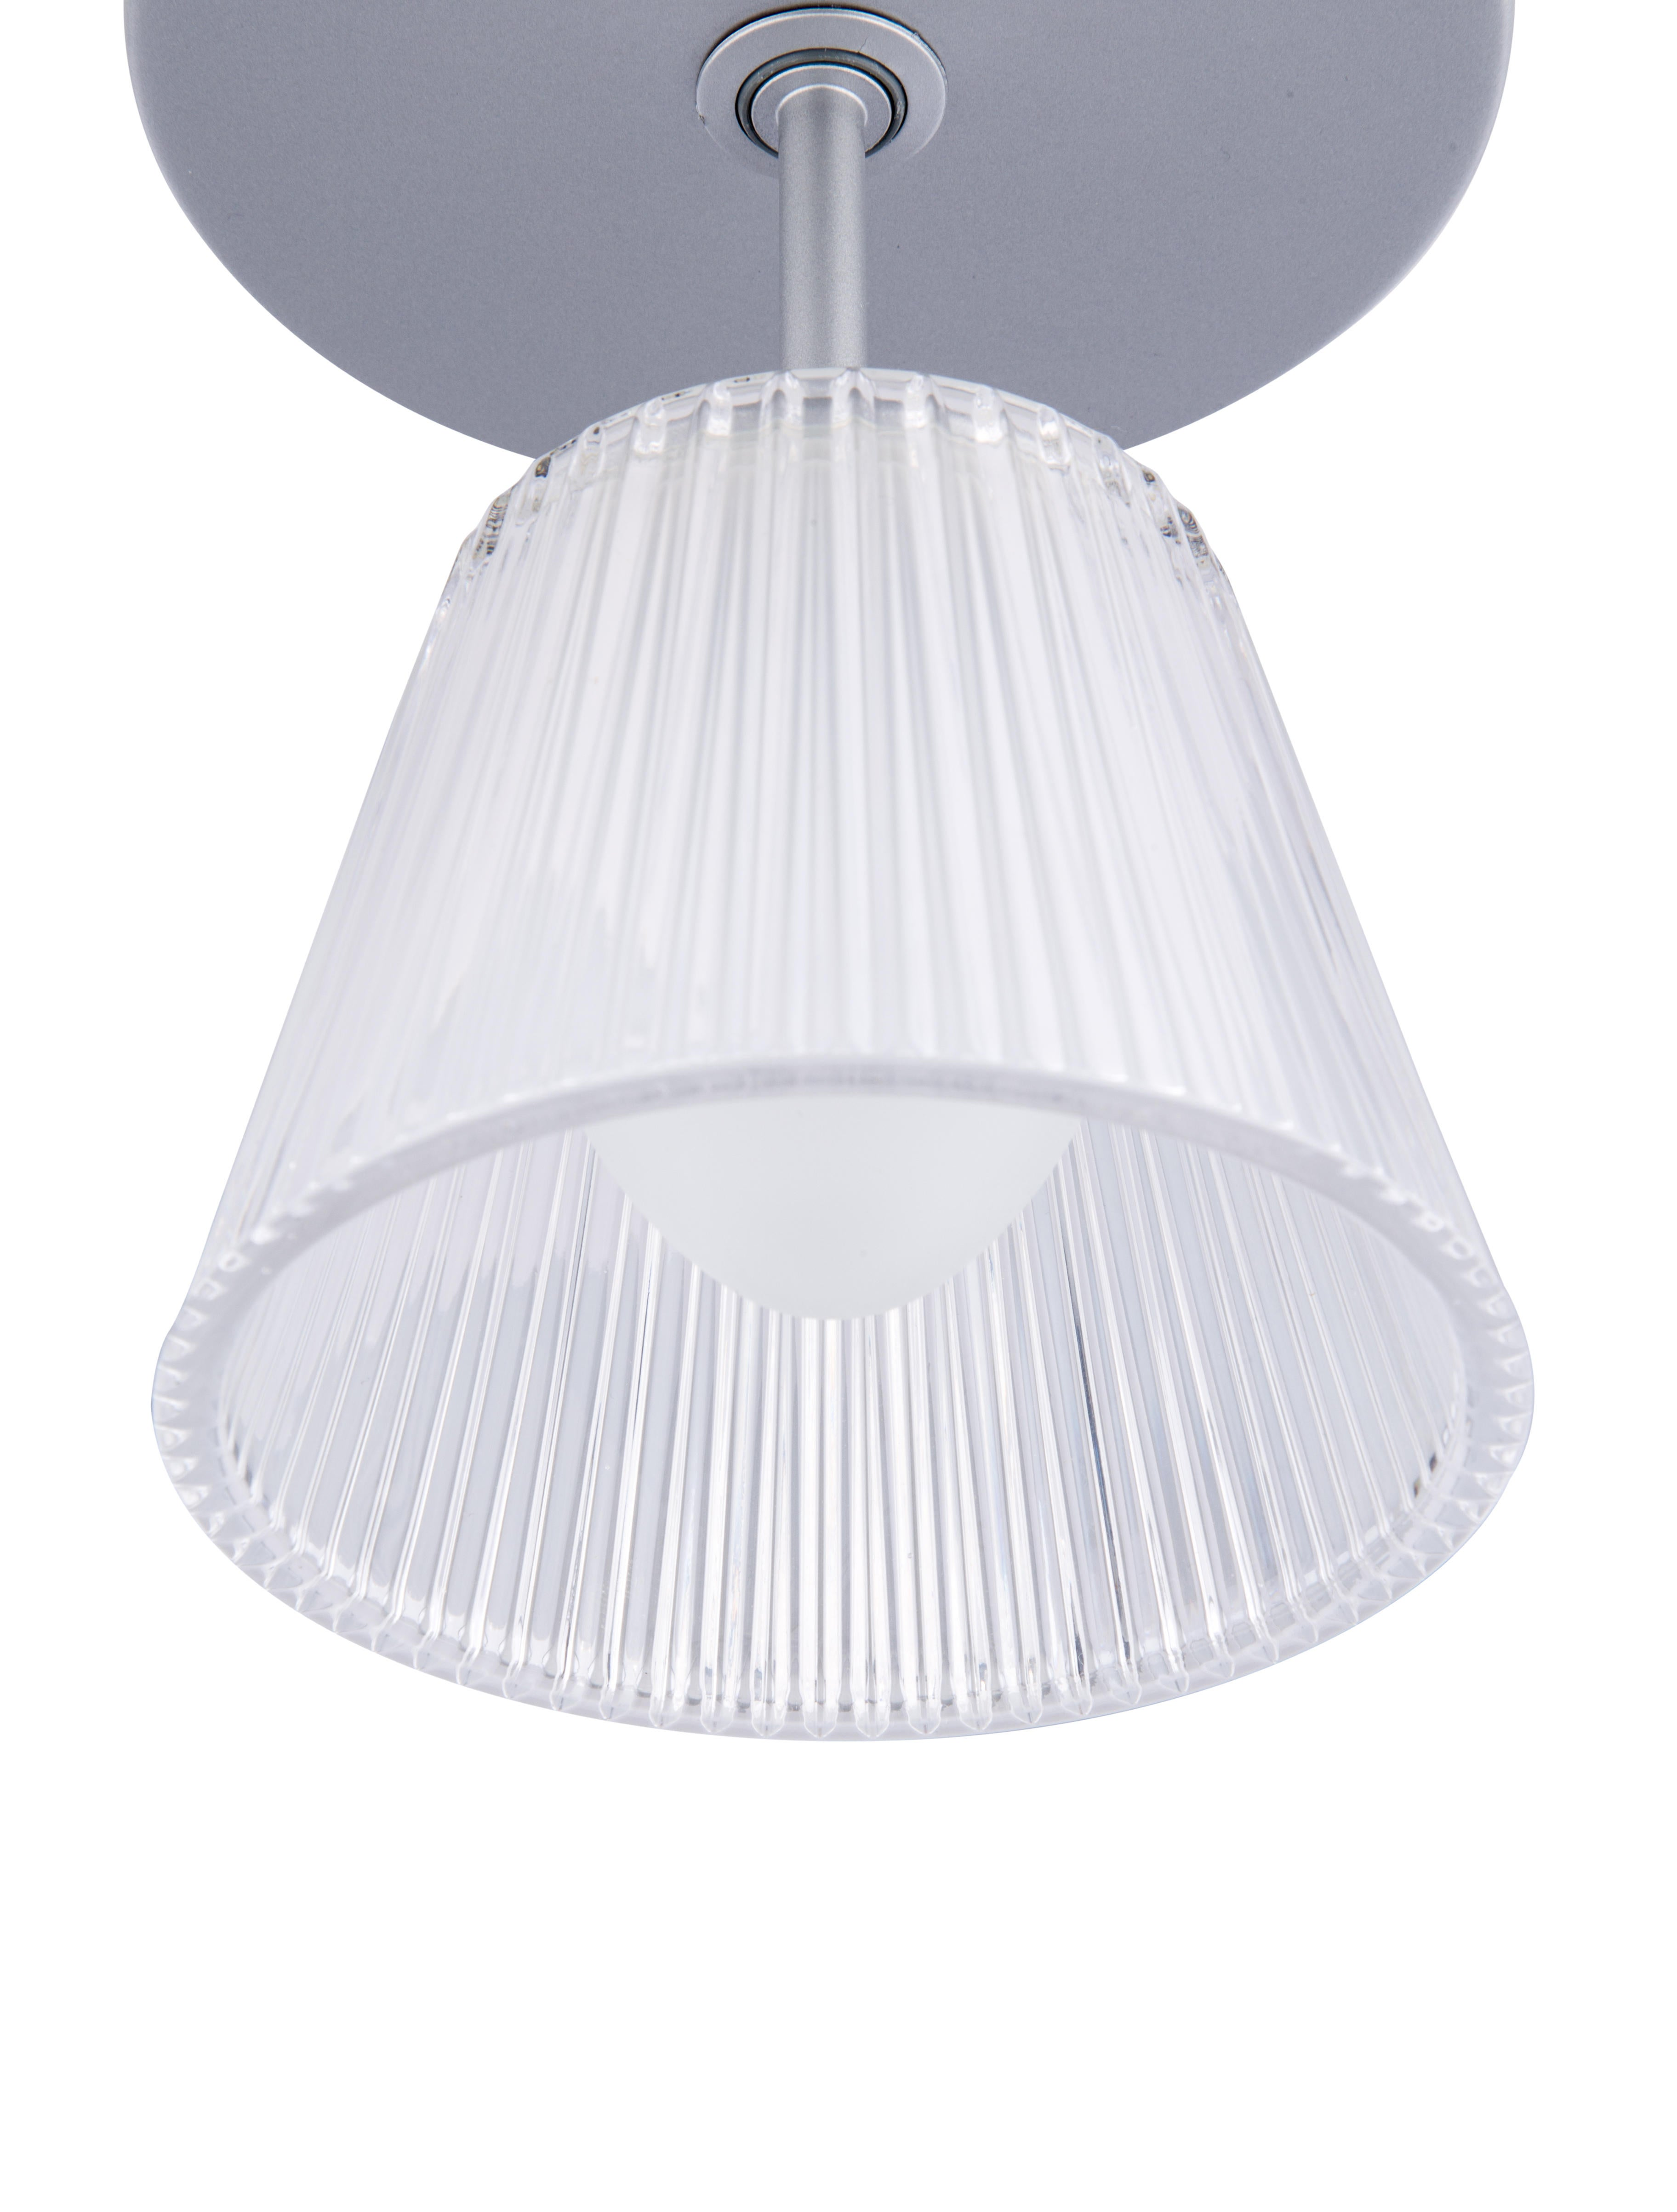 Flos Romeo Babe C1 Ceiling Lamp - Lighting - FLS20024 | The RealReal